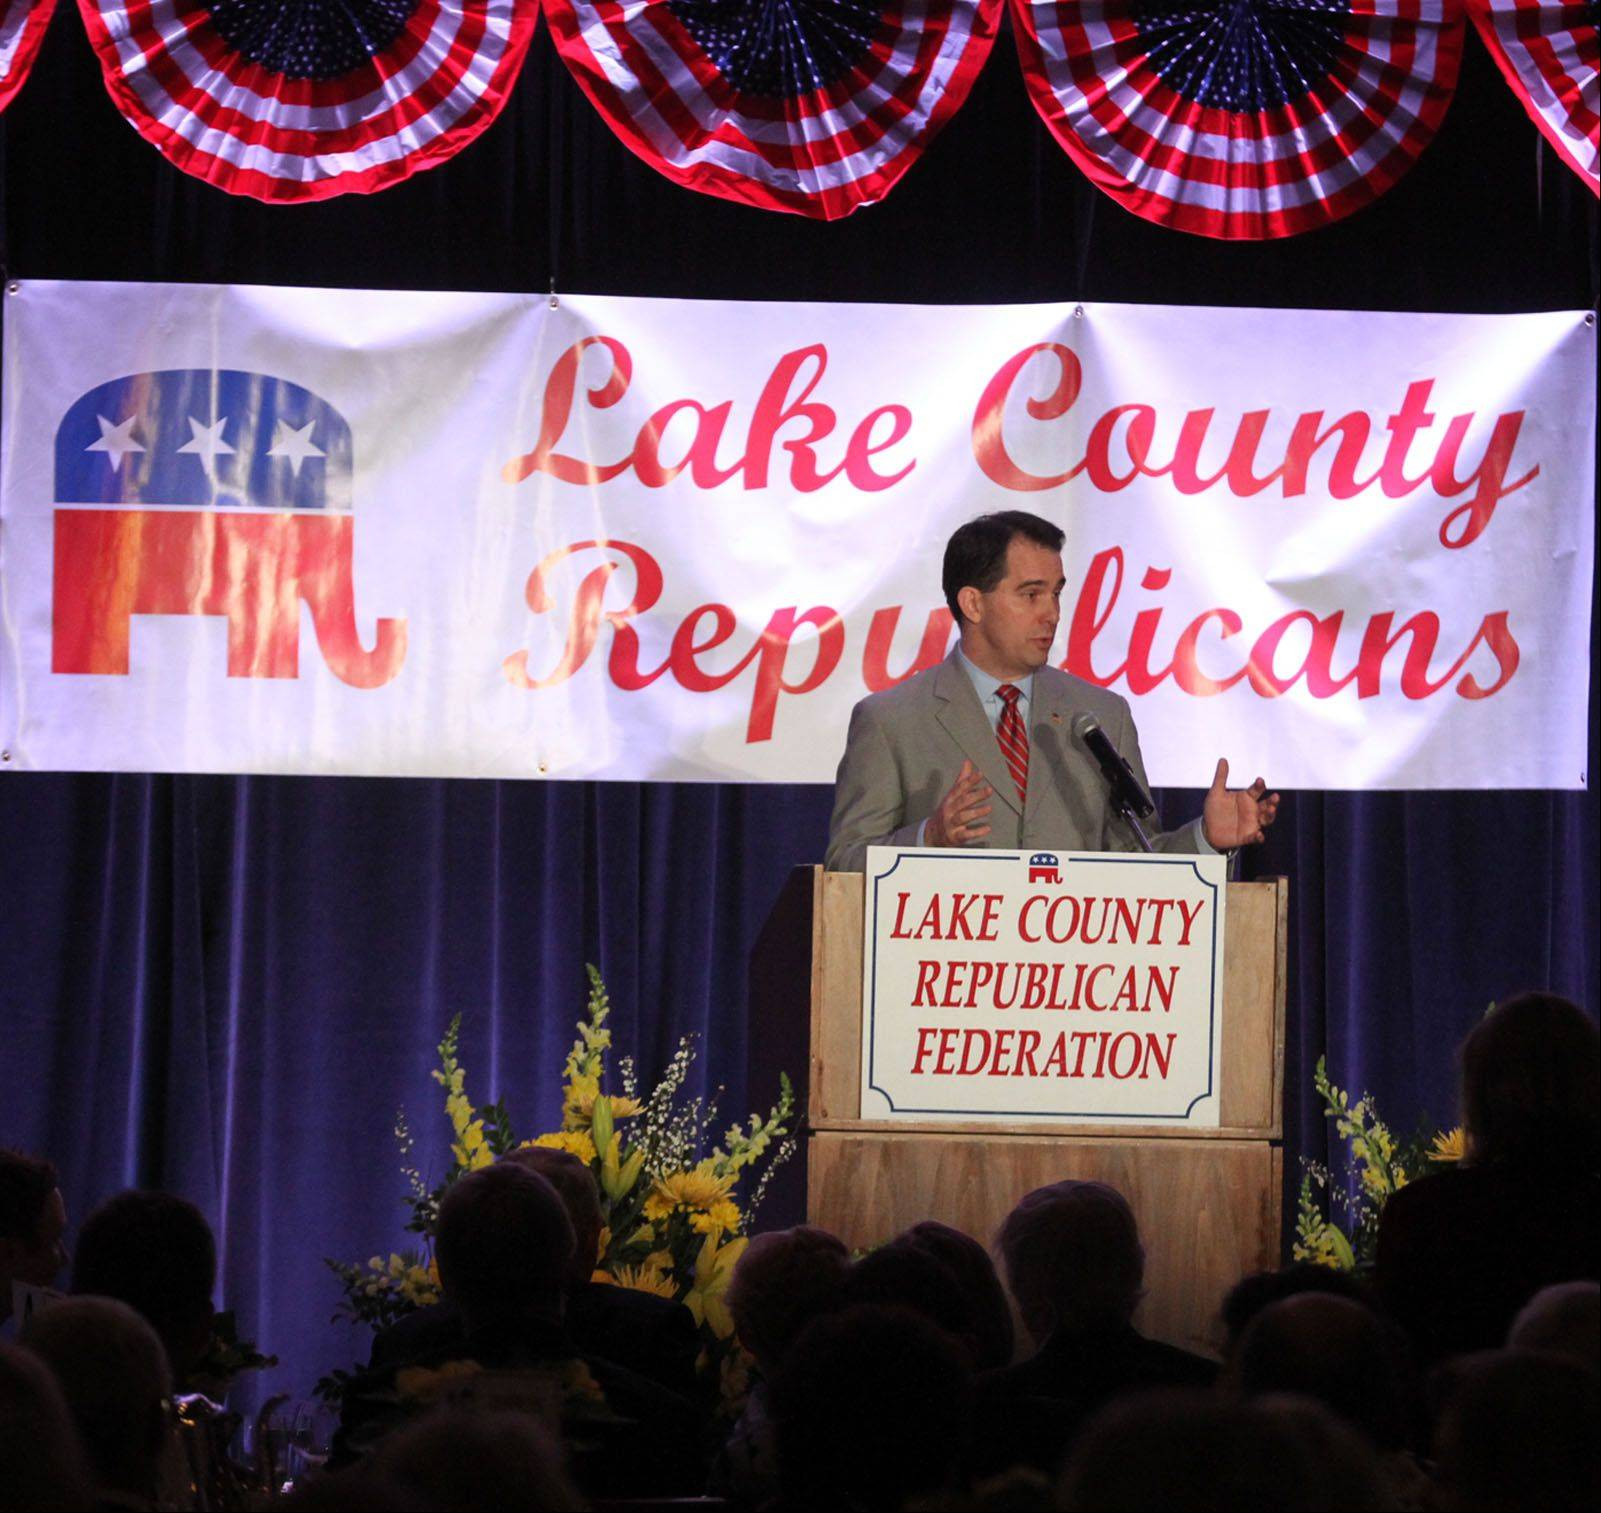 Wisconsin Gov. Scott Walker gives the keynote address at the Lake County Republican Federation's annual spring dinner at the Lincolnshire Marriott Resort on Friday.